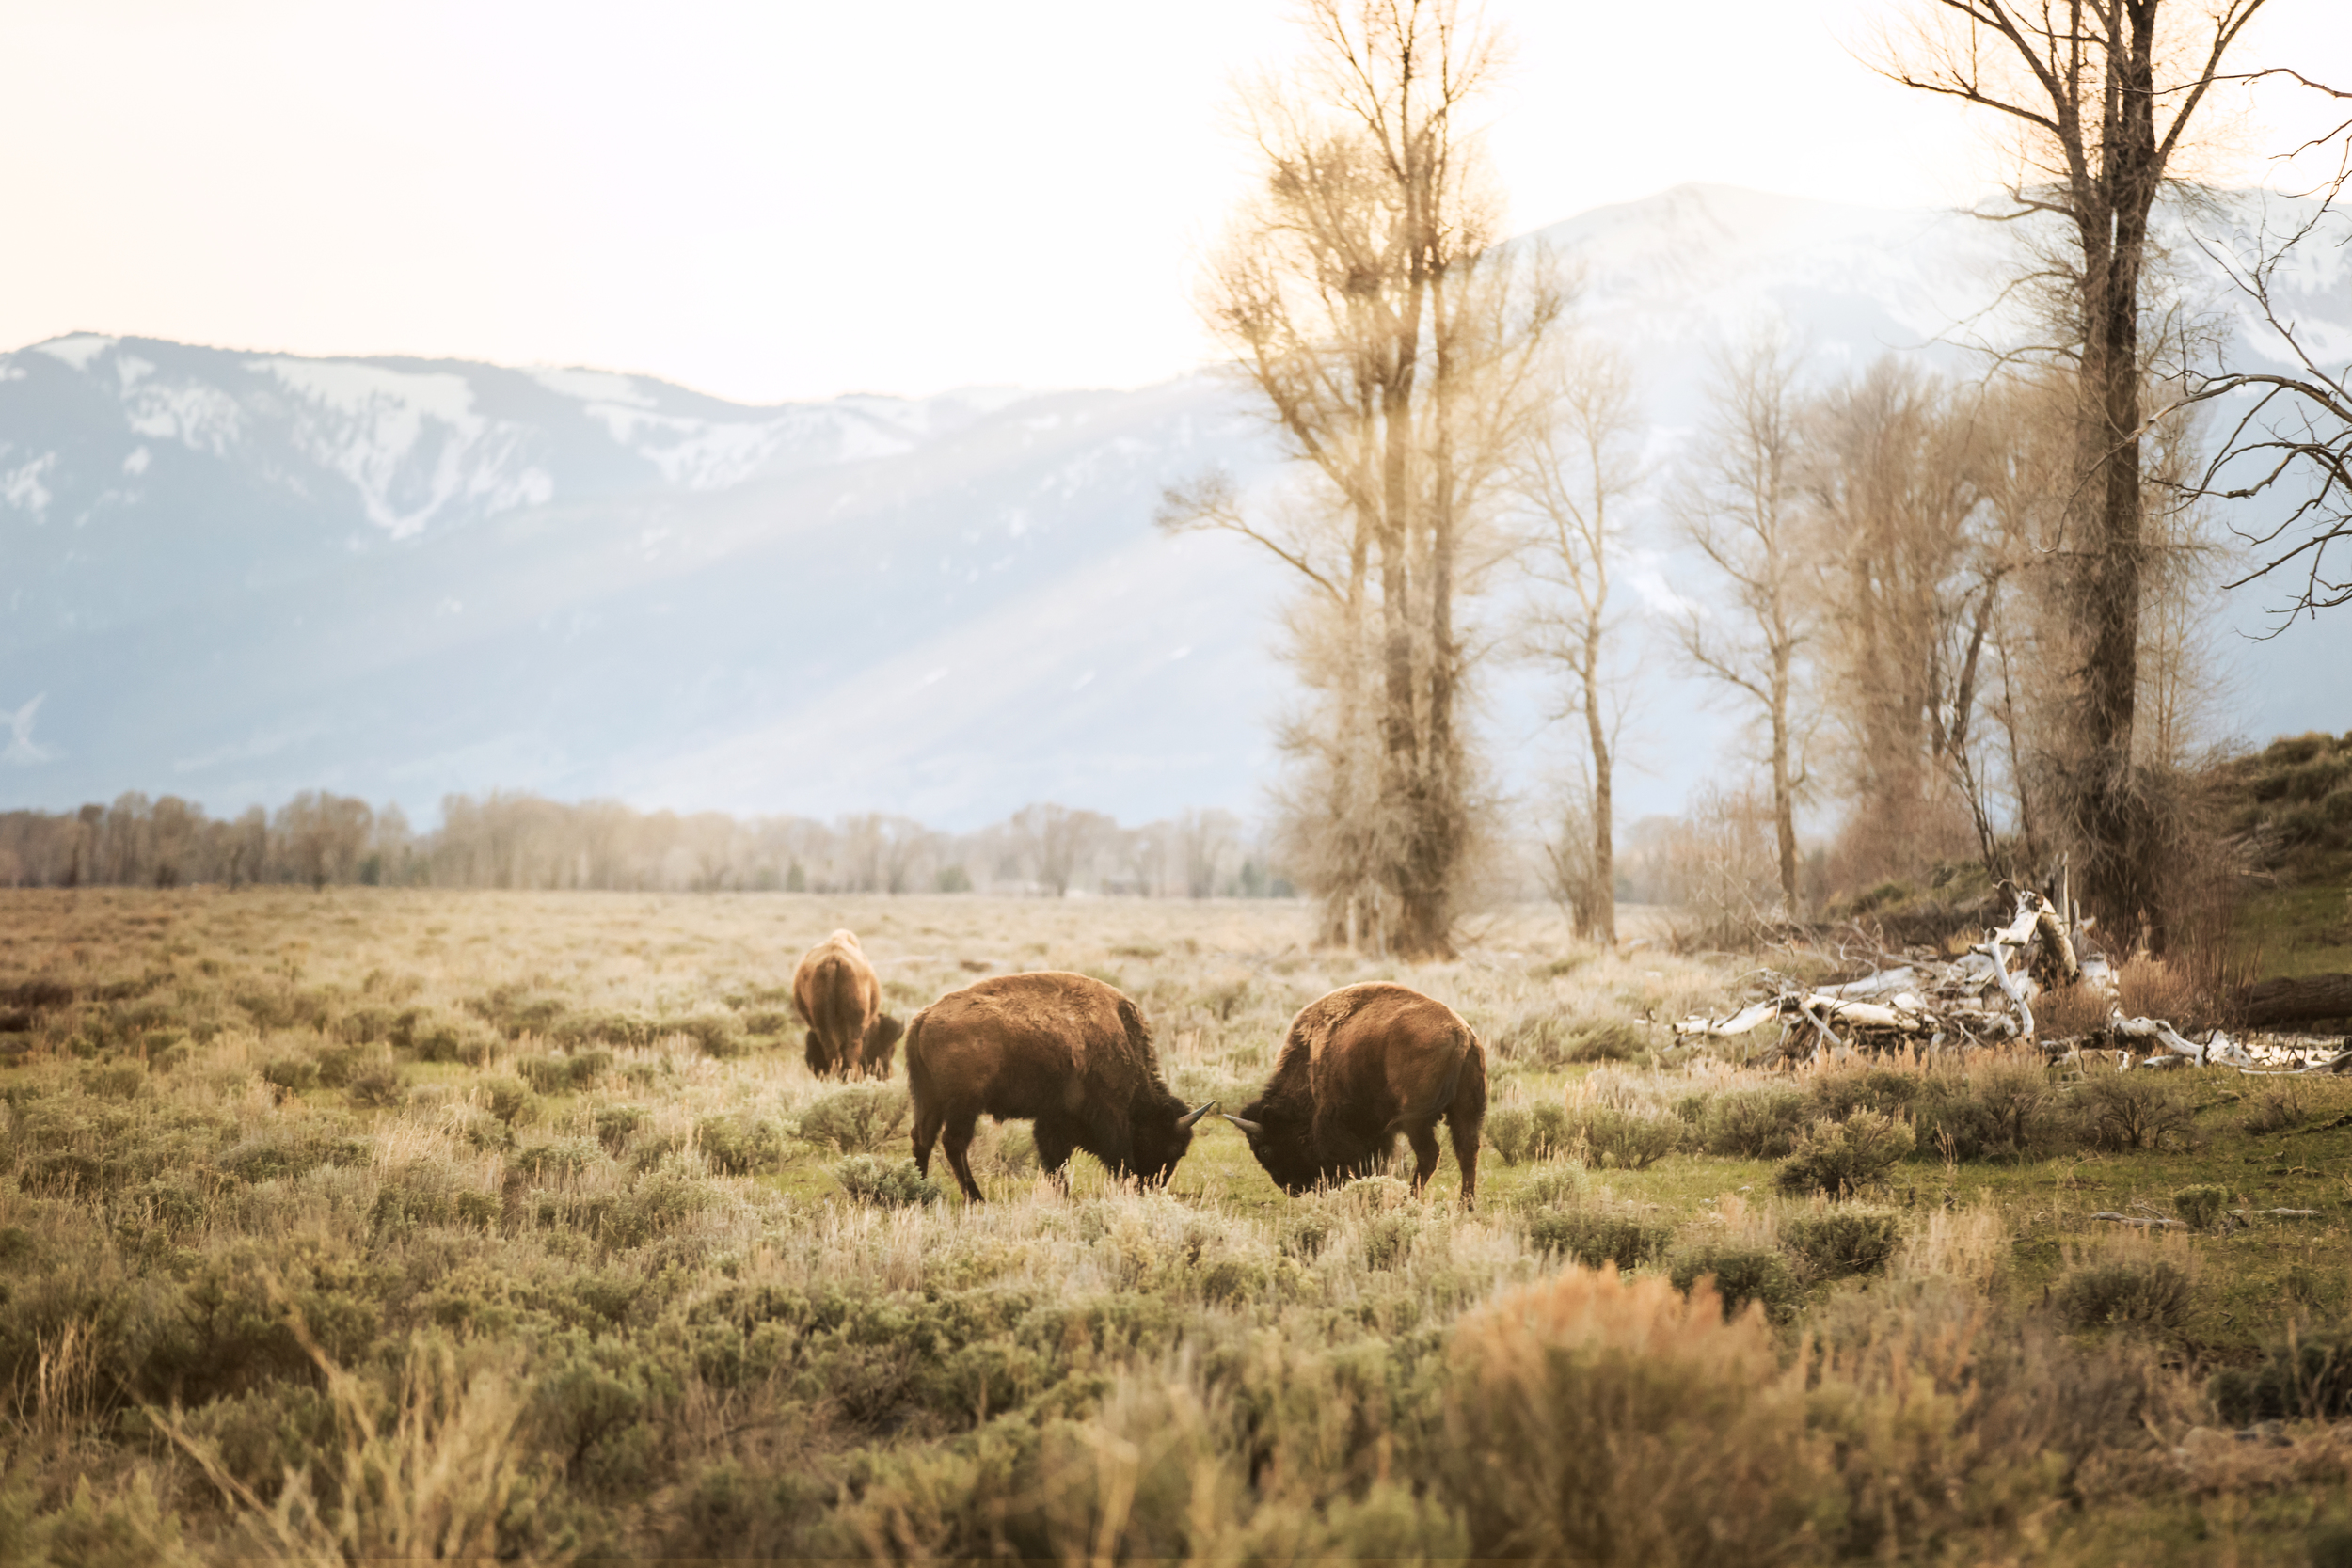 A few bison in a field in Wyoming